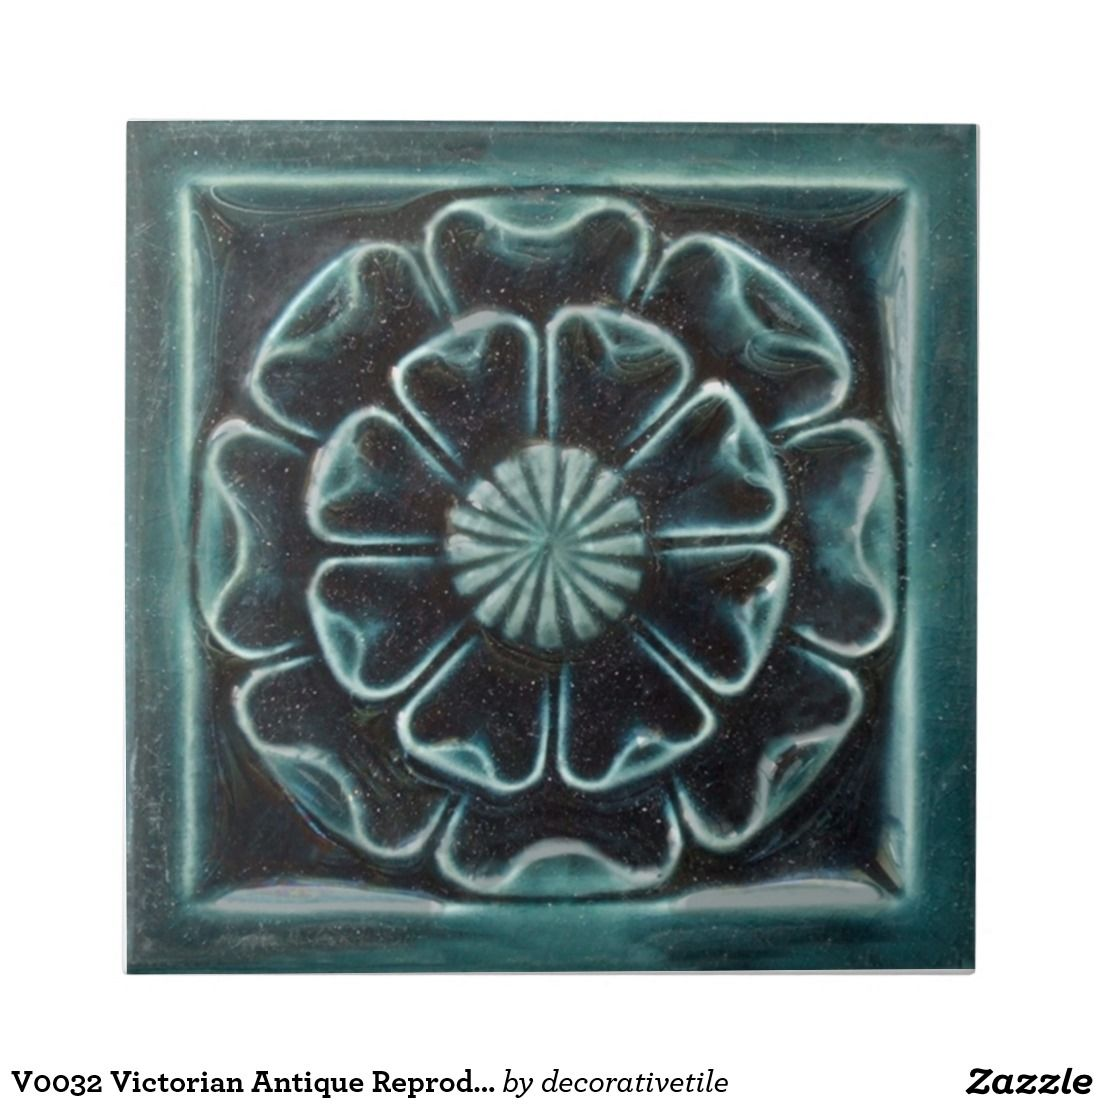 V0032 Victorian Antique Reproduction Ceramic Tile